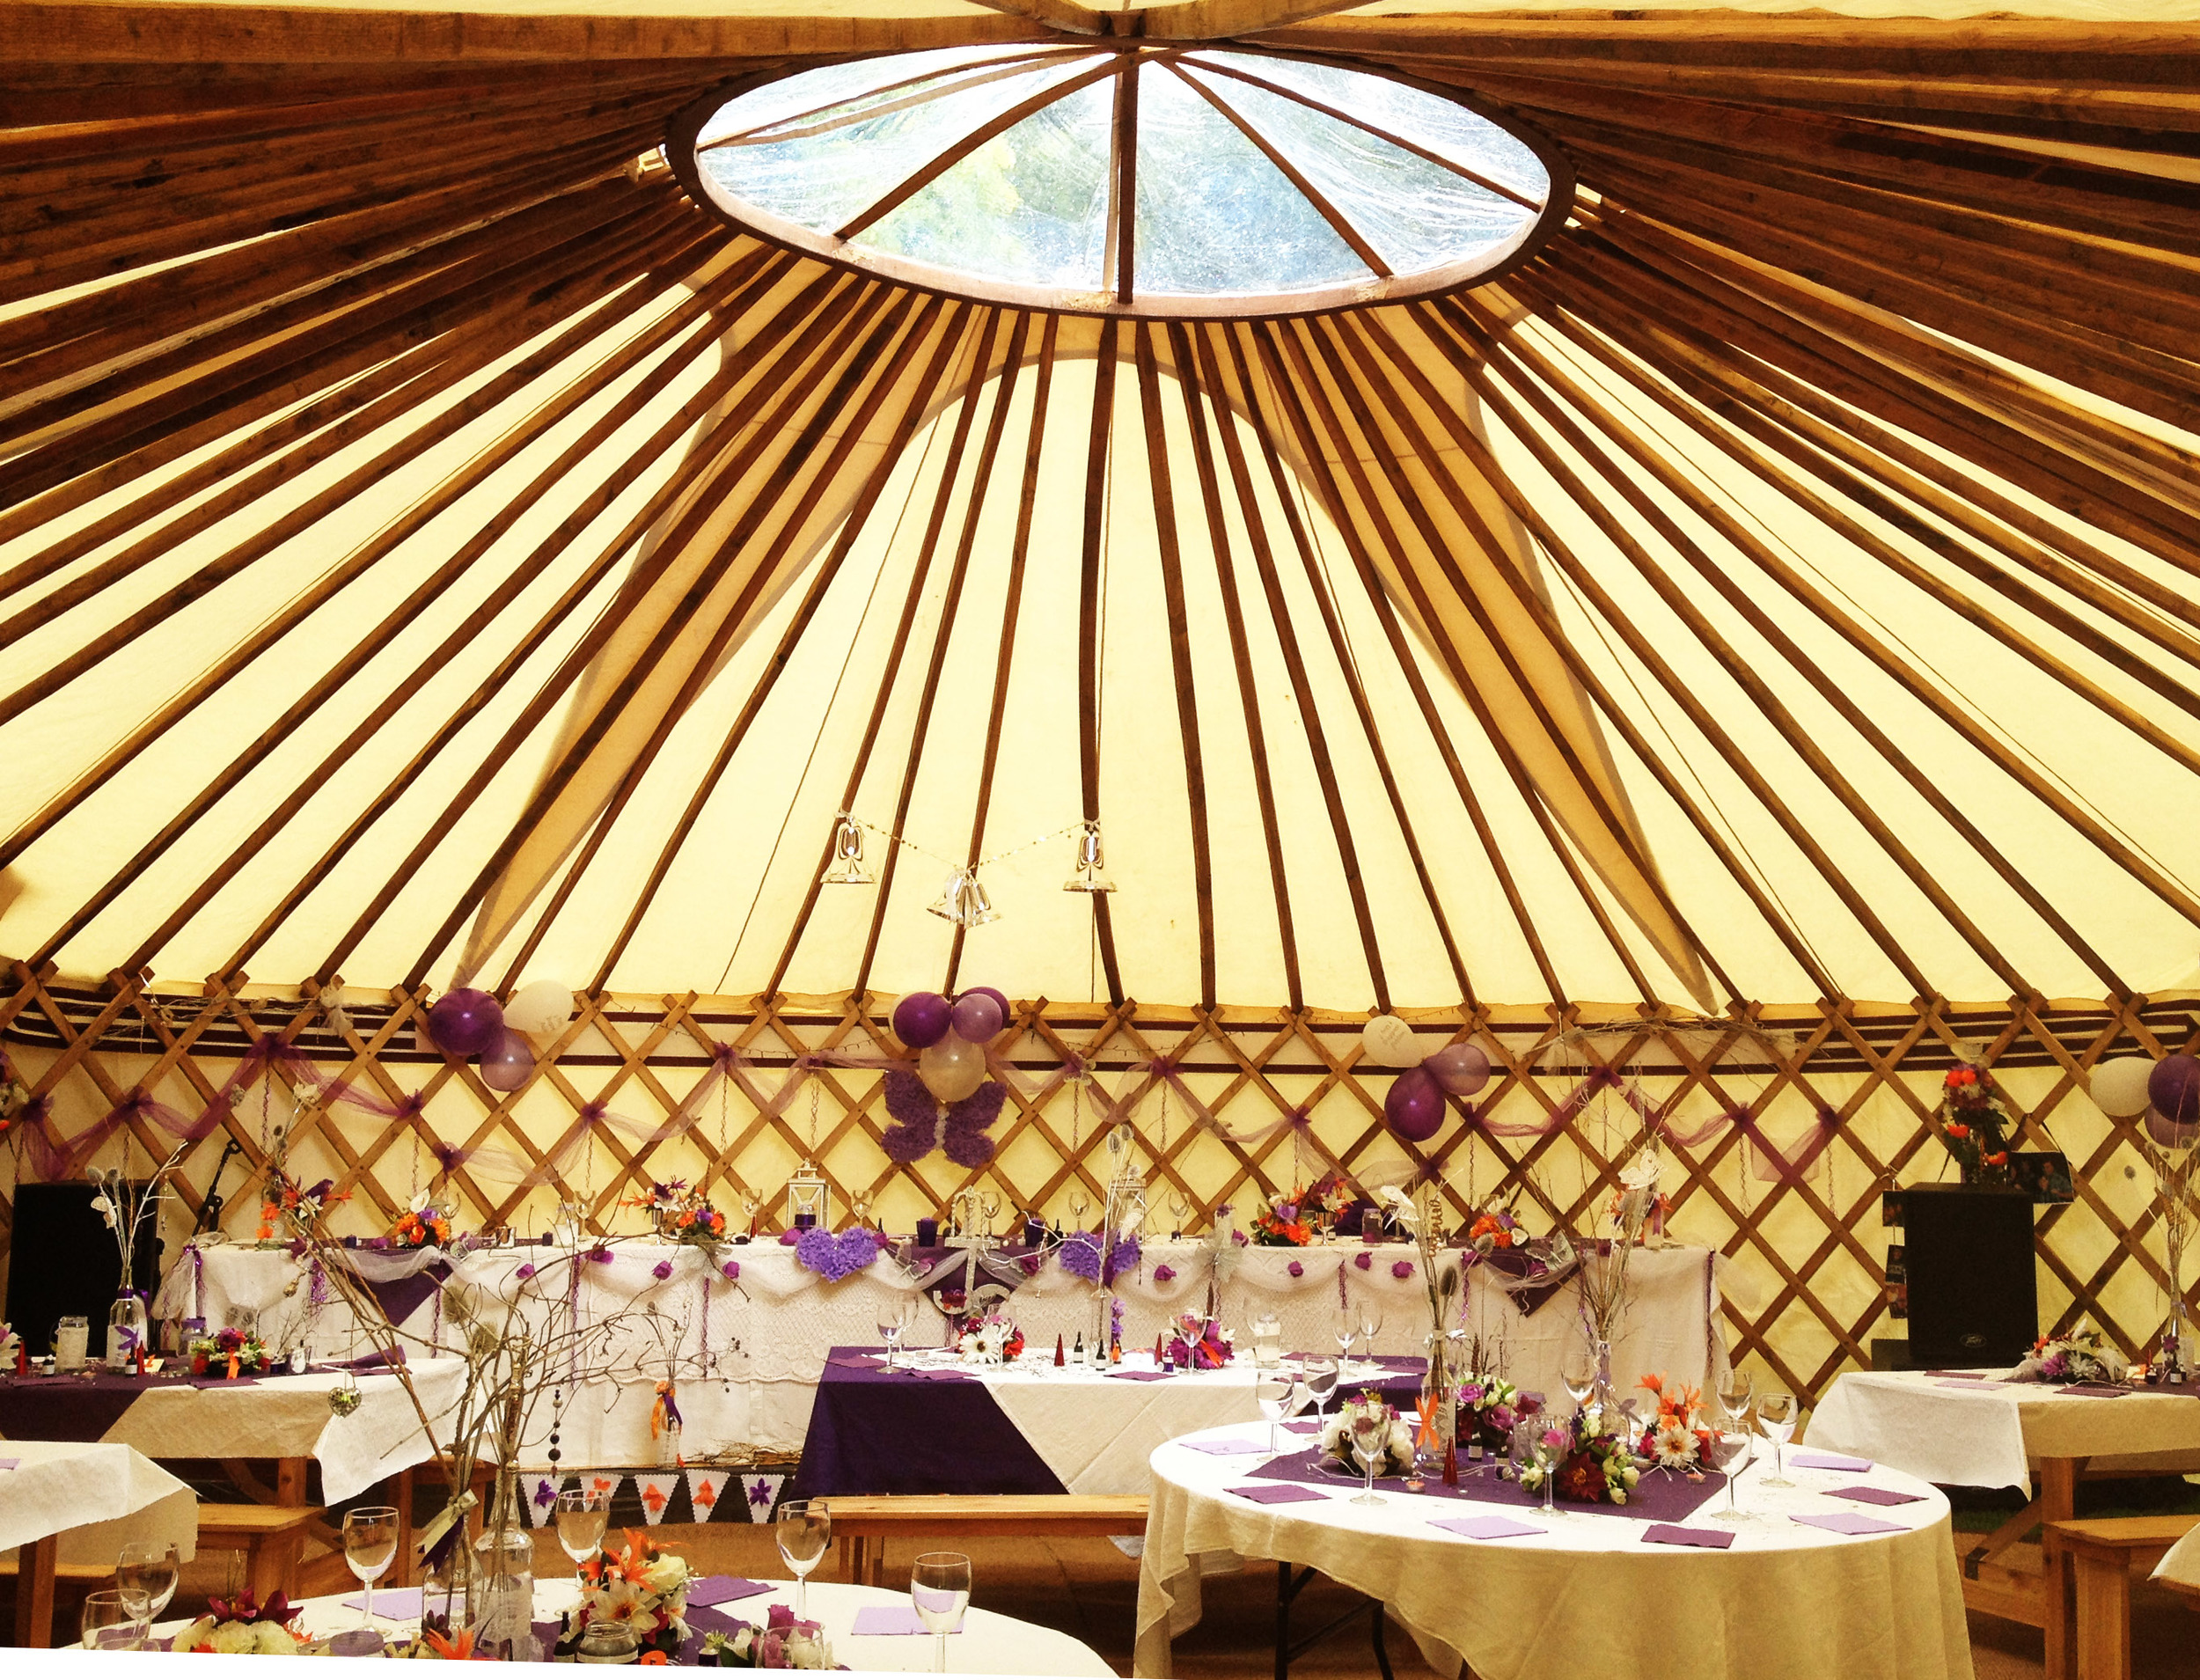 36ft yurt laid up for a wedding.